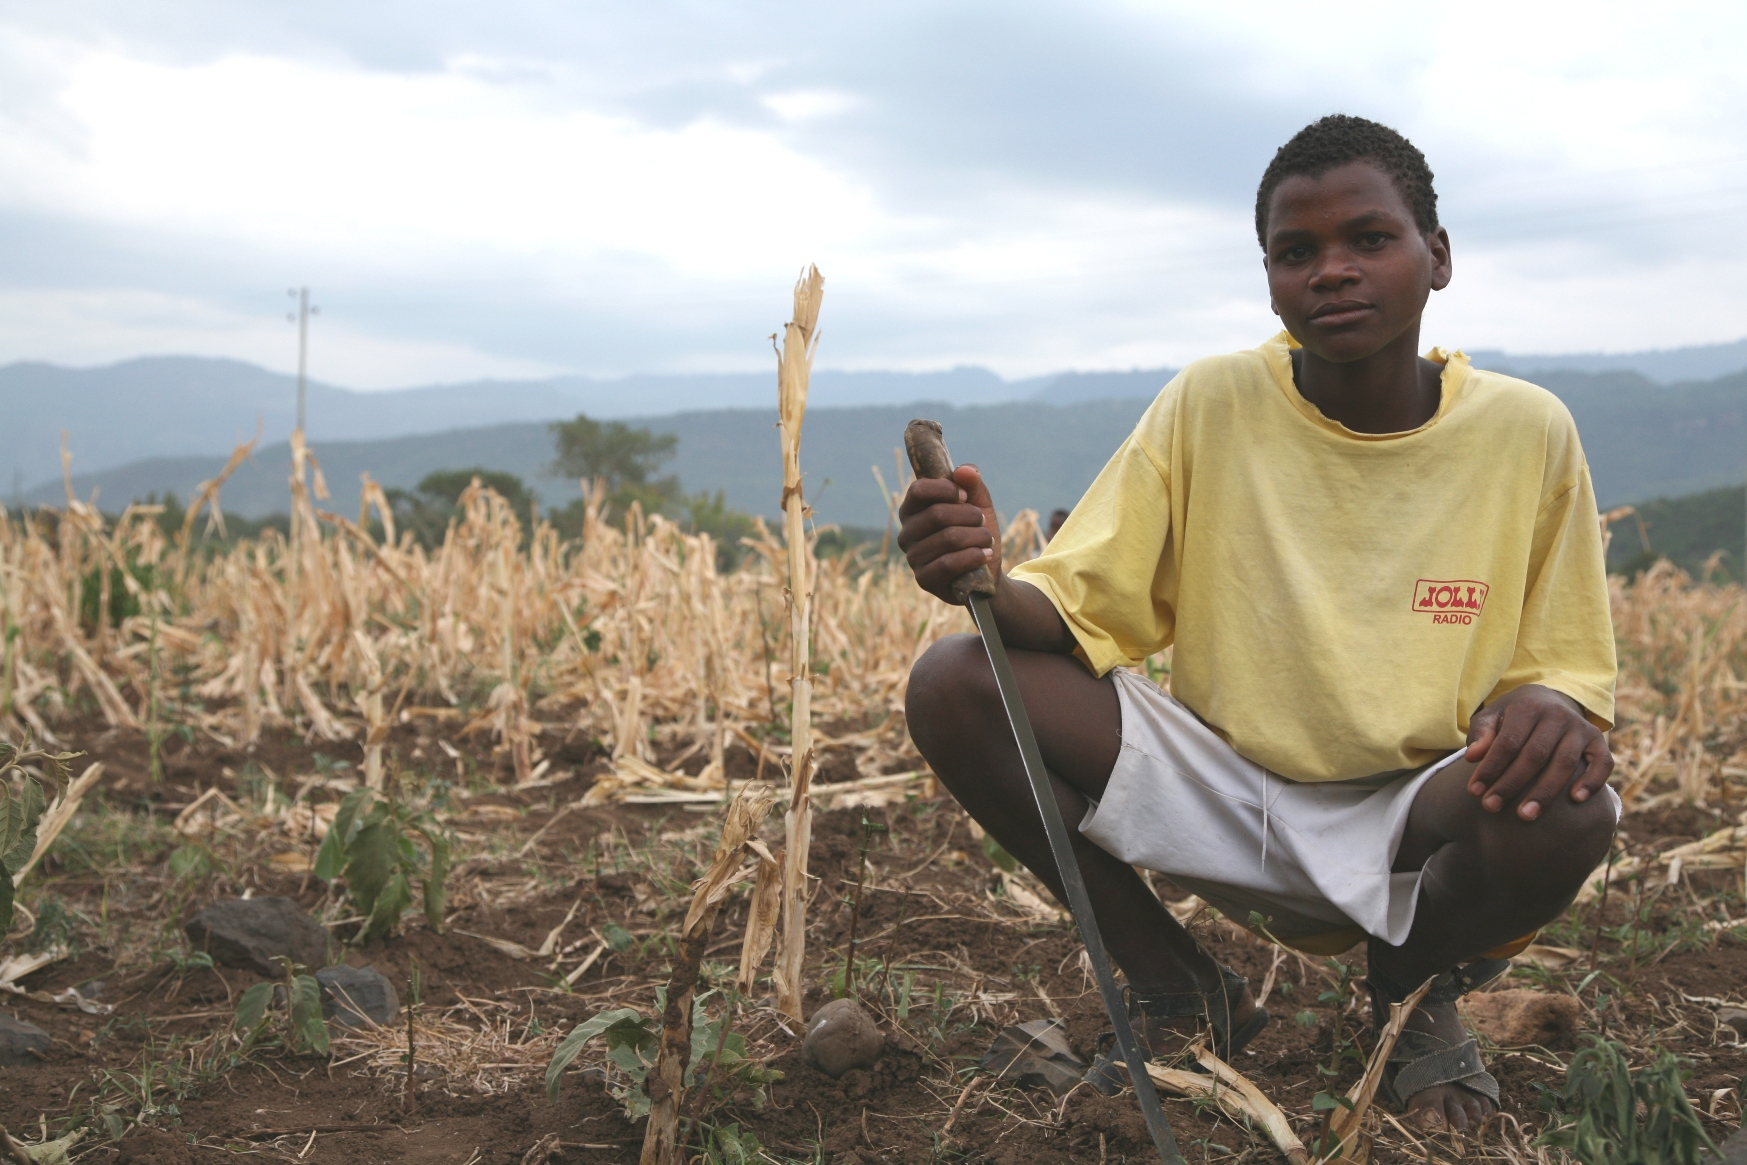 A young man in drought conditions in Ethiopia